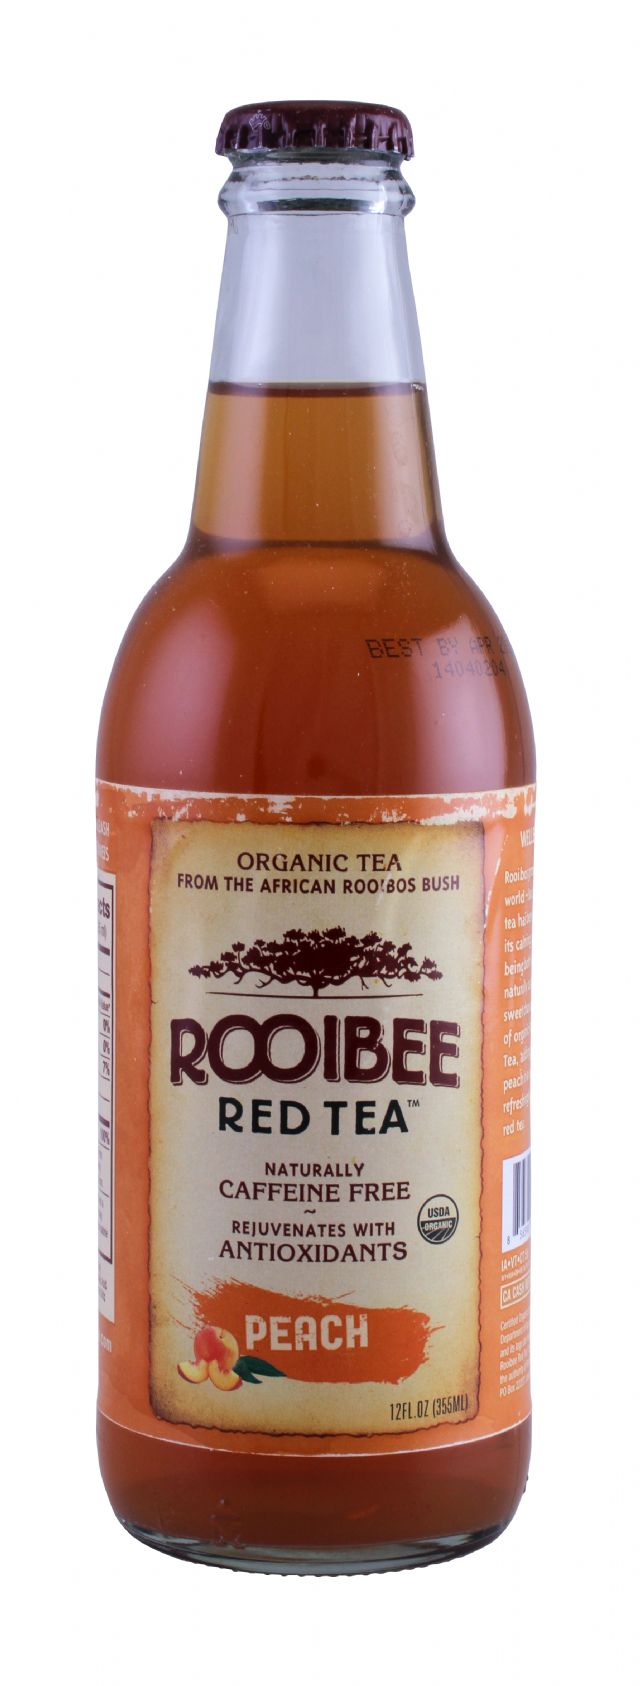 Rooibee Red Tea: Rooibee Peach Front